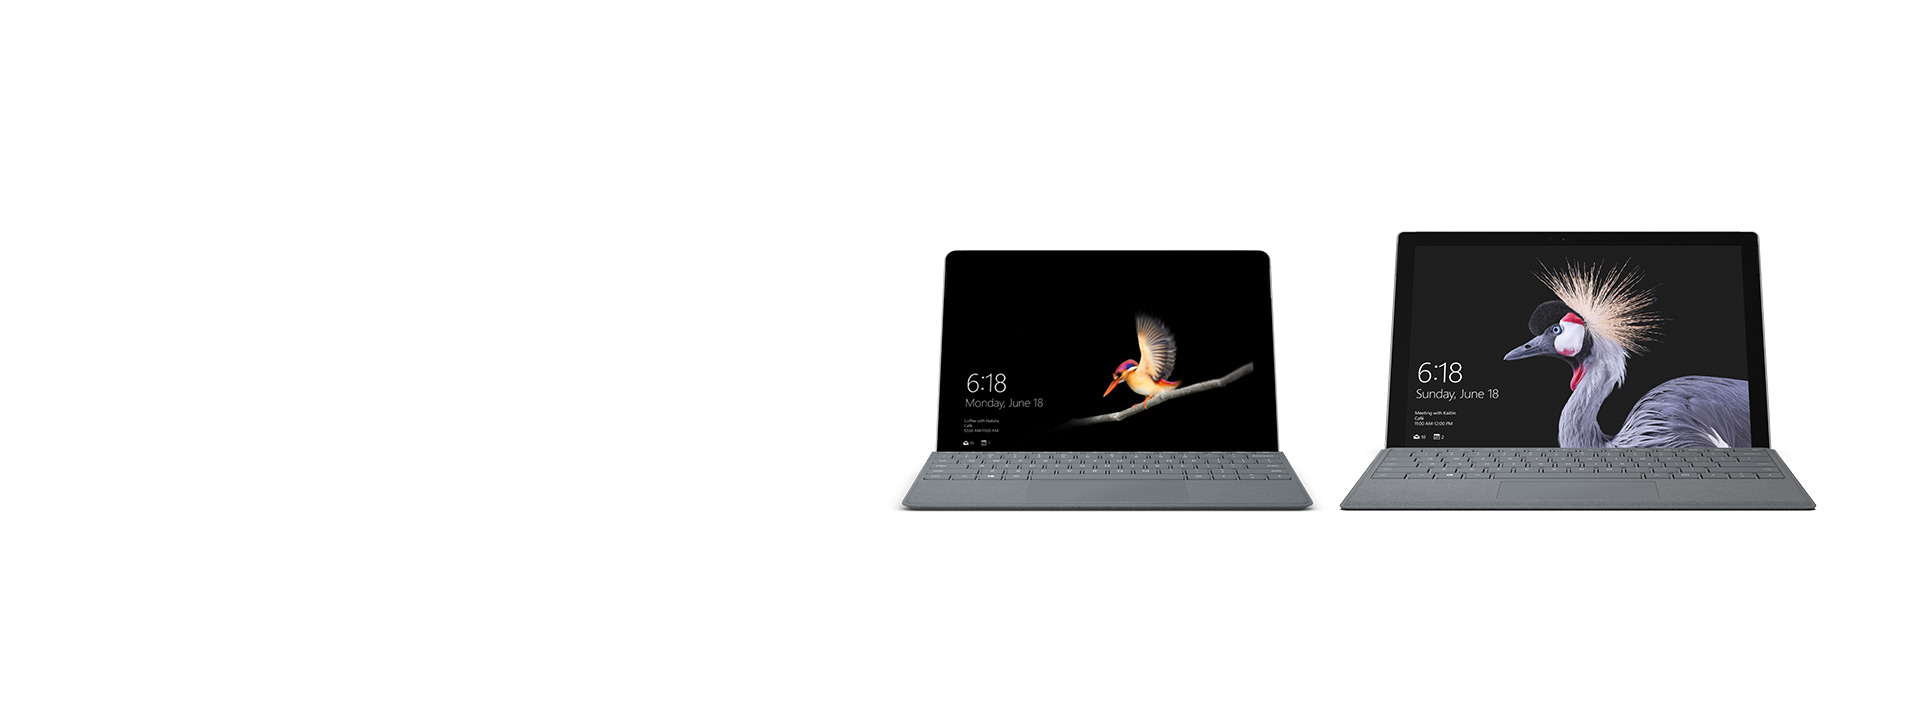 عائلة Surface - Surface Go وSurface Pro